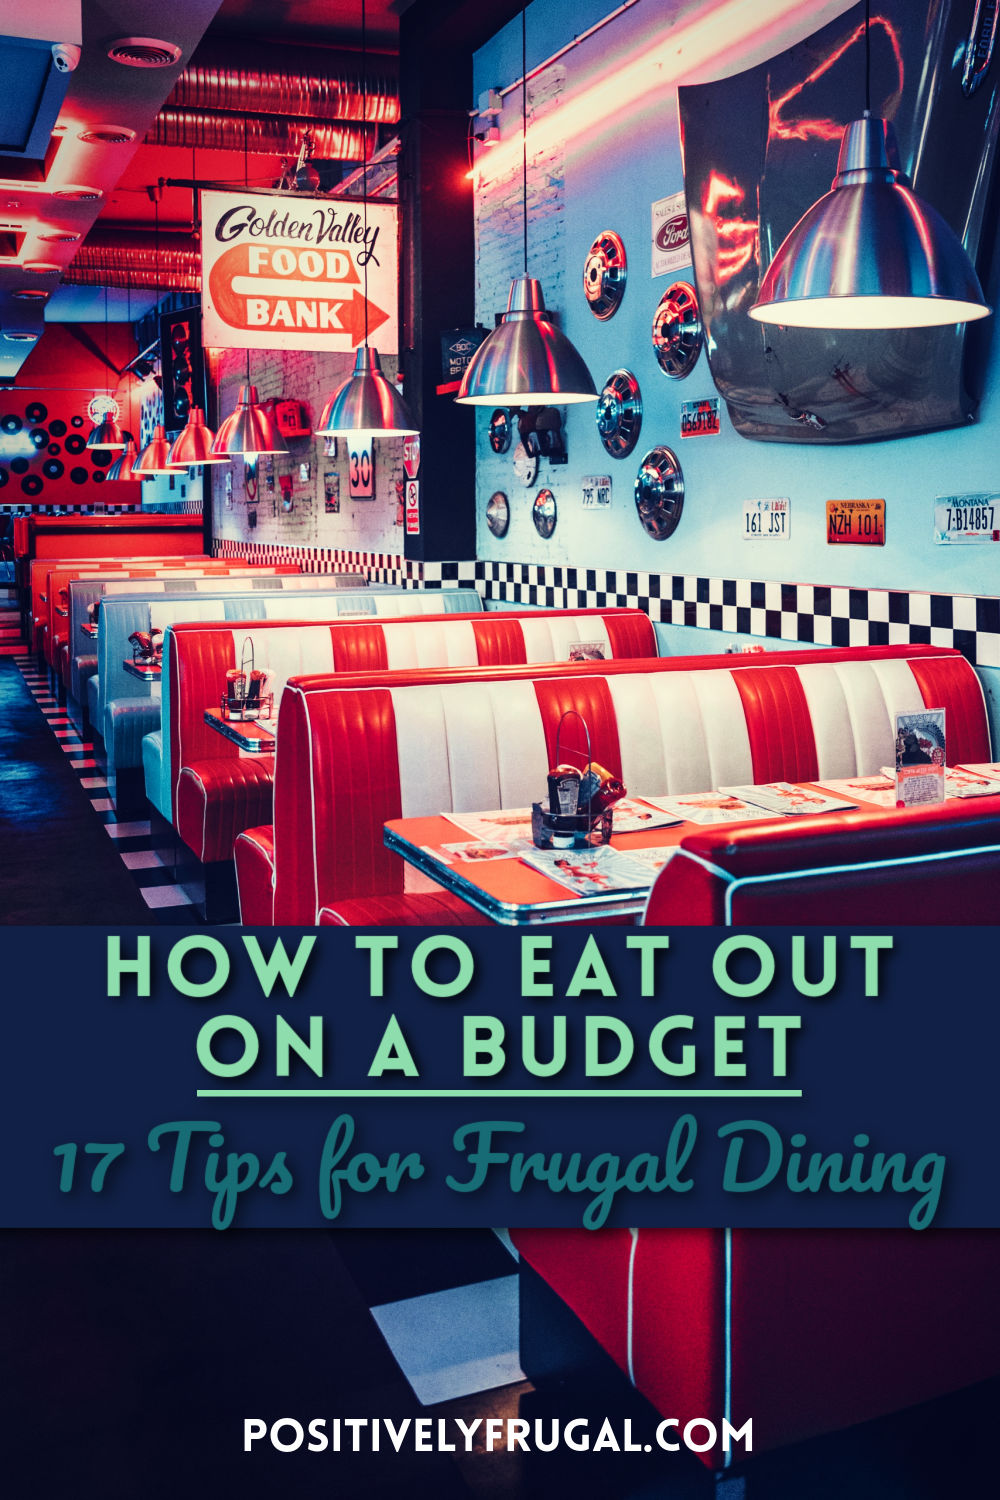 How to Eat Out on a Budget Tips by PositivelyFrugal.com